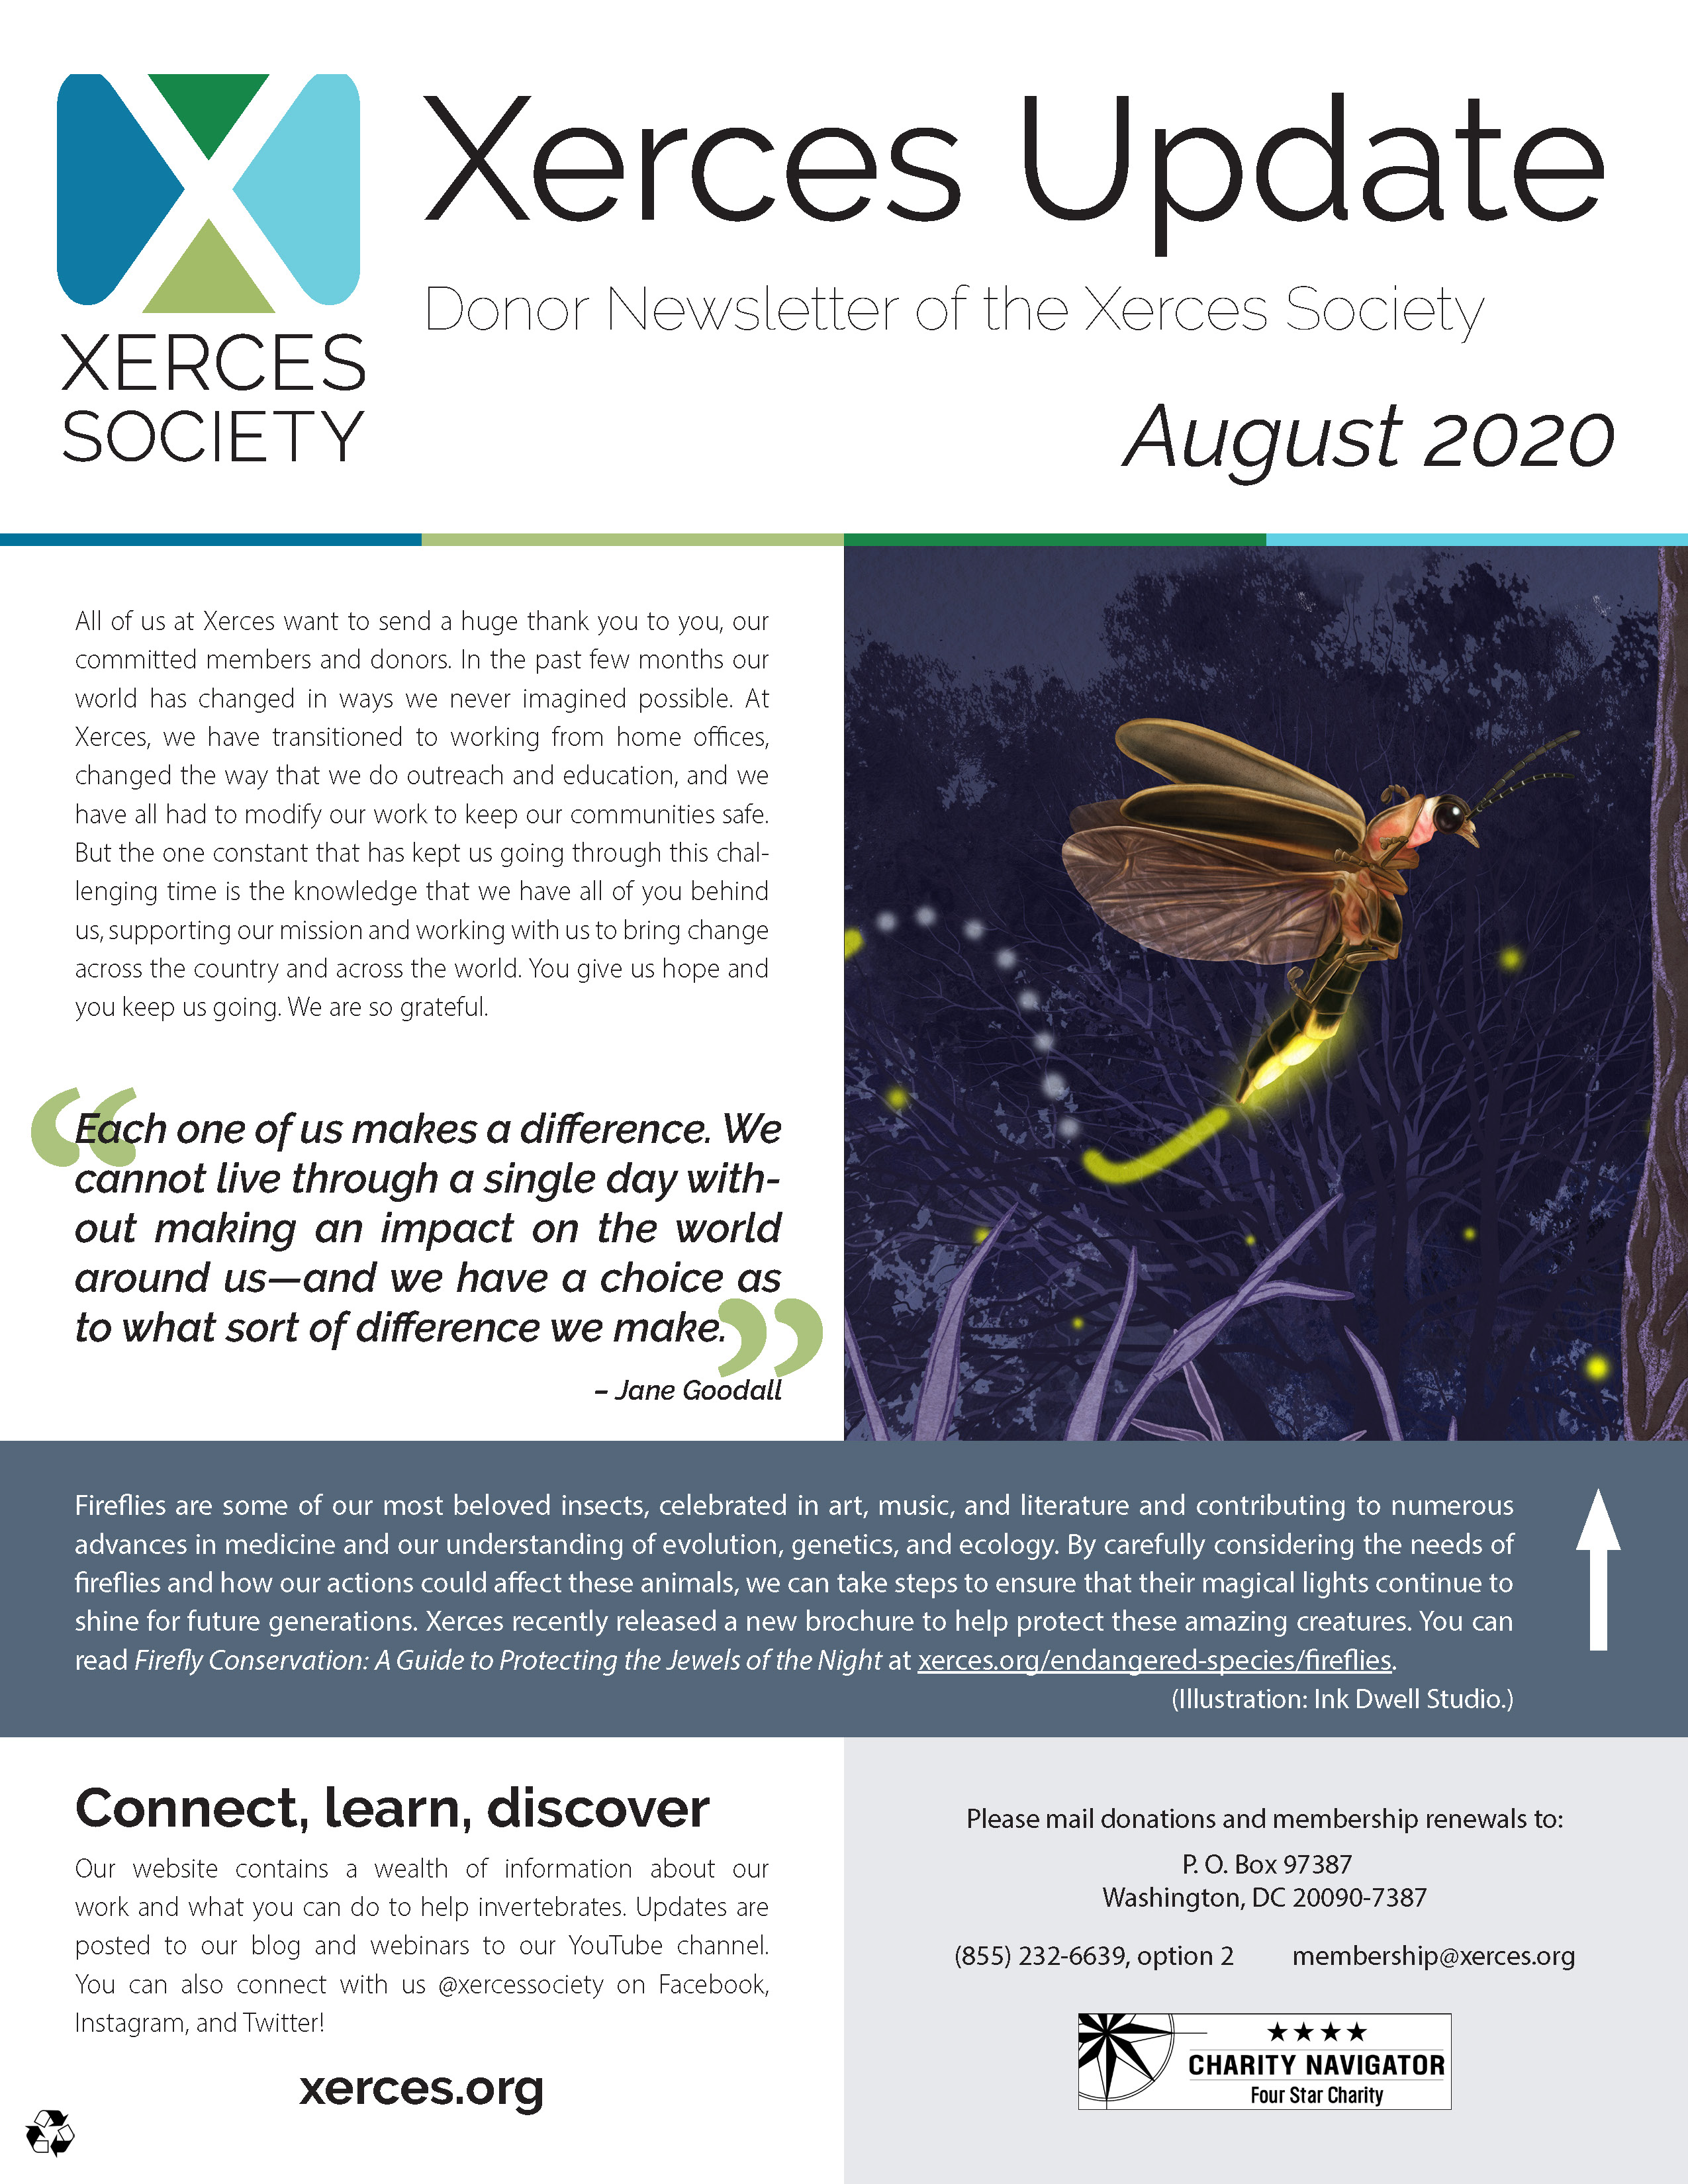 The cover of a Xerces Update is shown. A large image of a monarch cluster is shown.